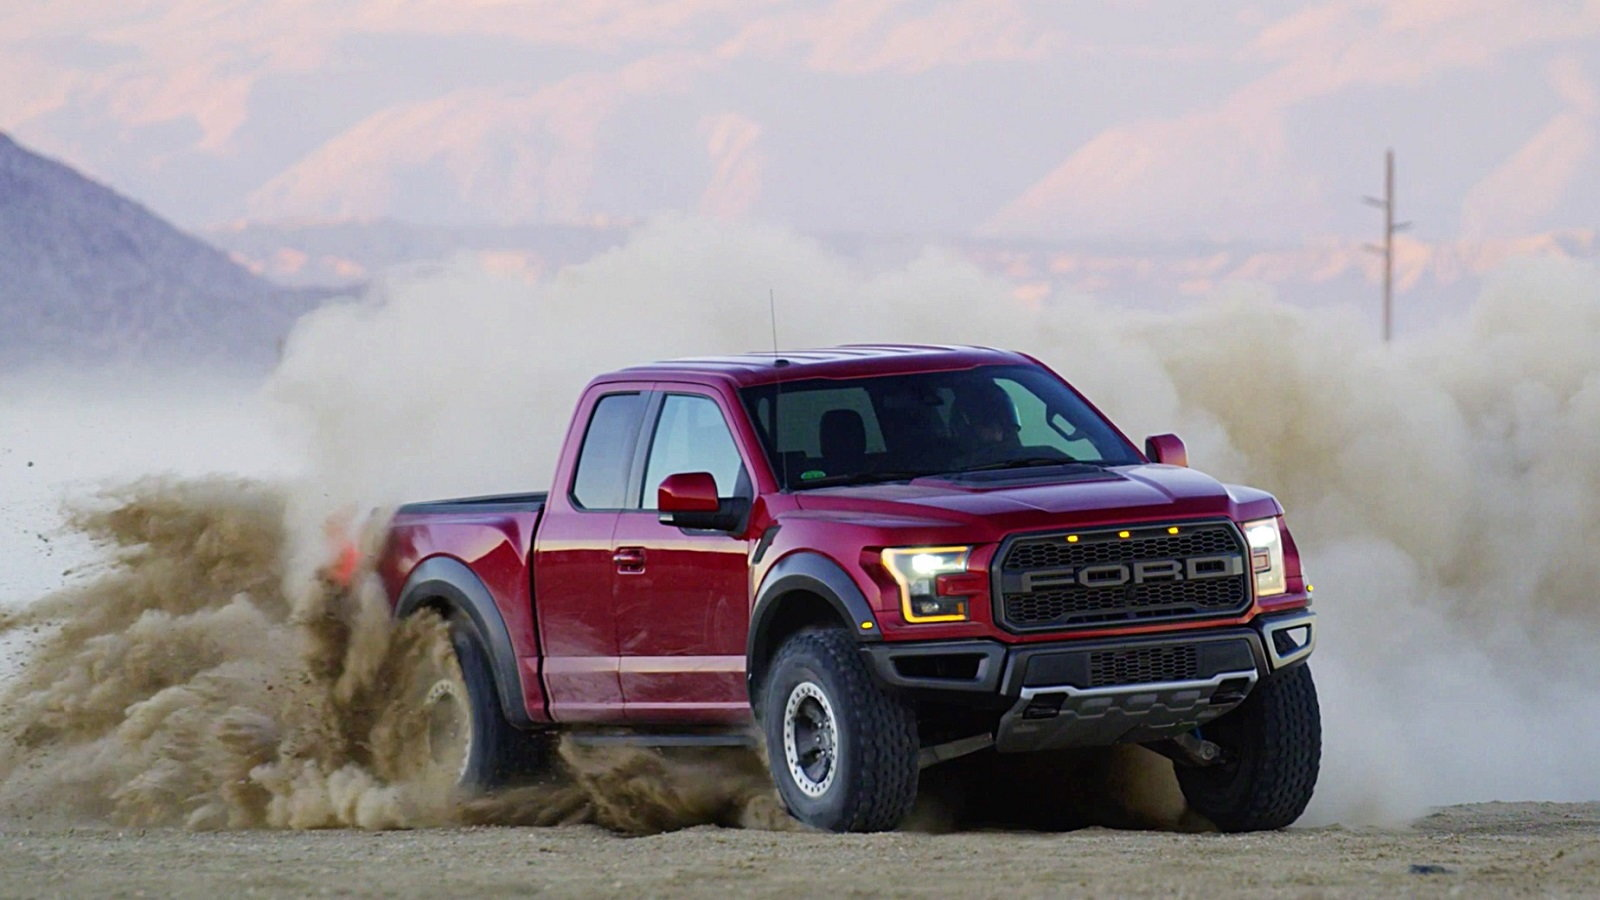 2017 Popular Mechanics Automotive Excellence Awards Truck of the Year